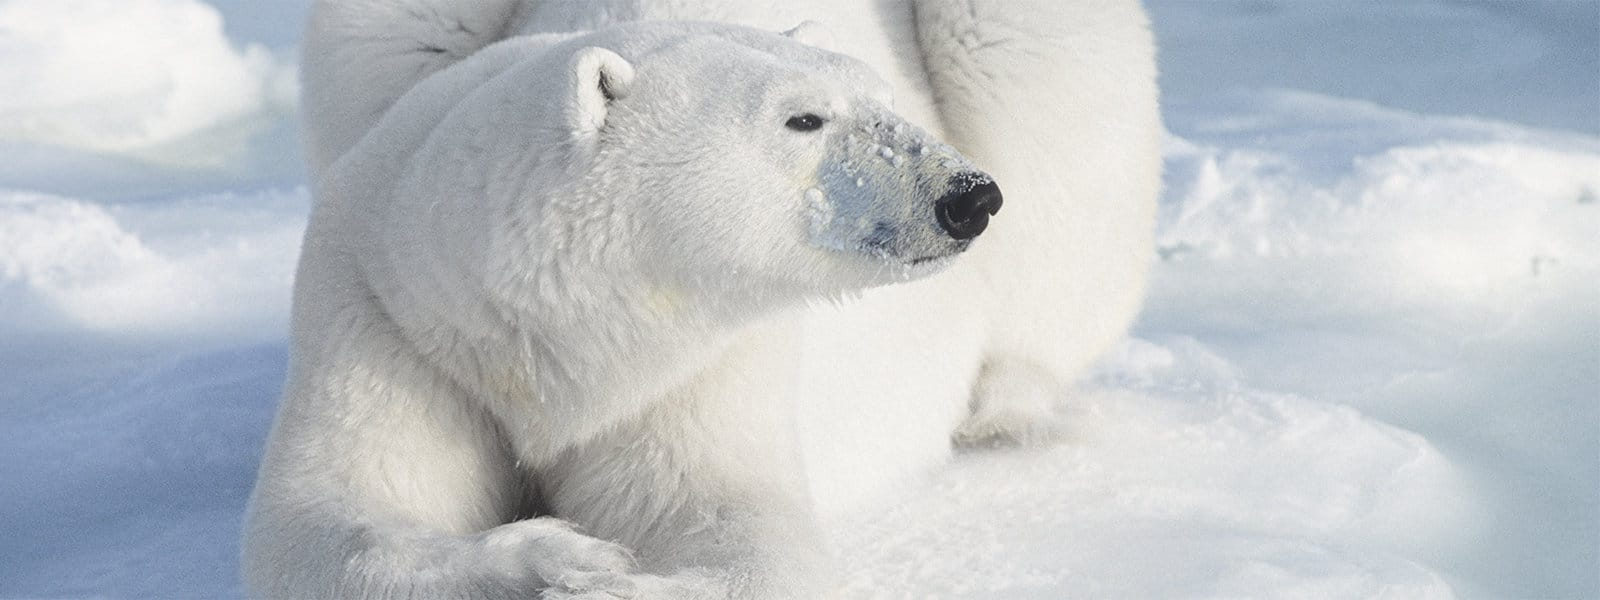 A close-up color photo of a polar bear lying in the snow.